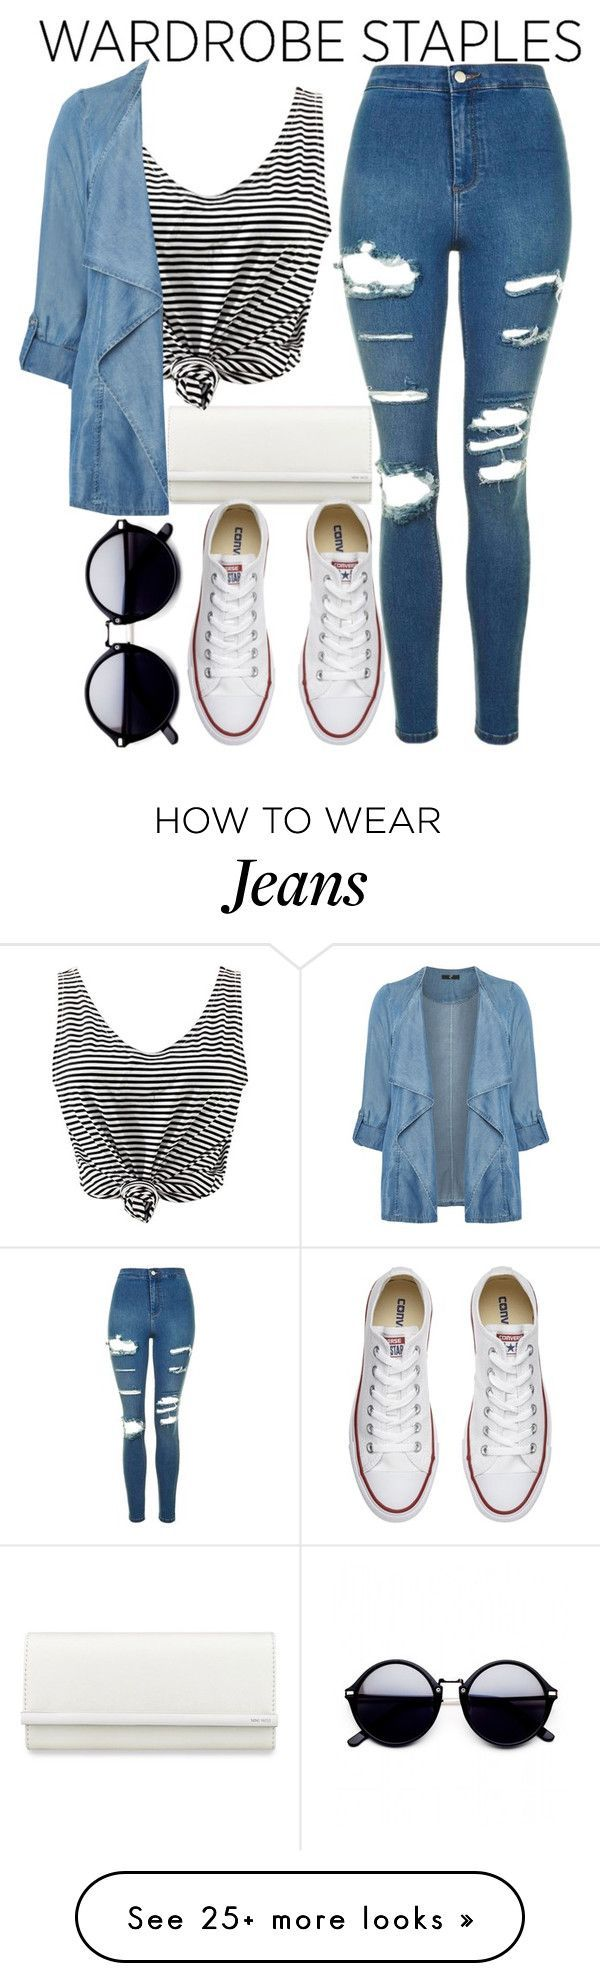 """Wardrobe staples"" by mareehamasood246 on Polyvore featuring Nine West, WithChic, Evans, Converse, Topshop, denimjackets and WardrobeStaples"